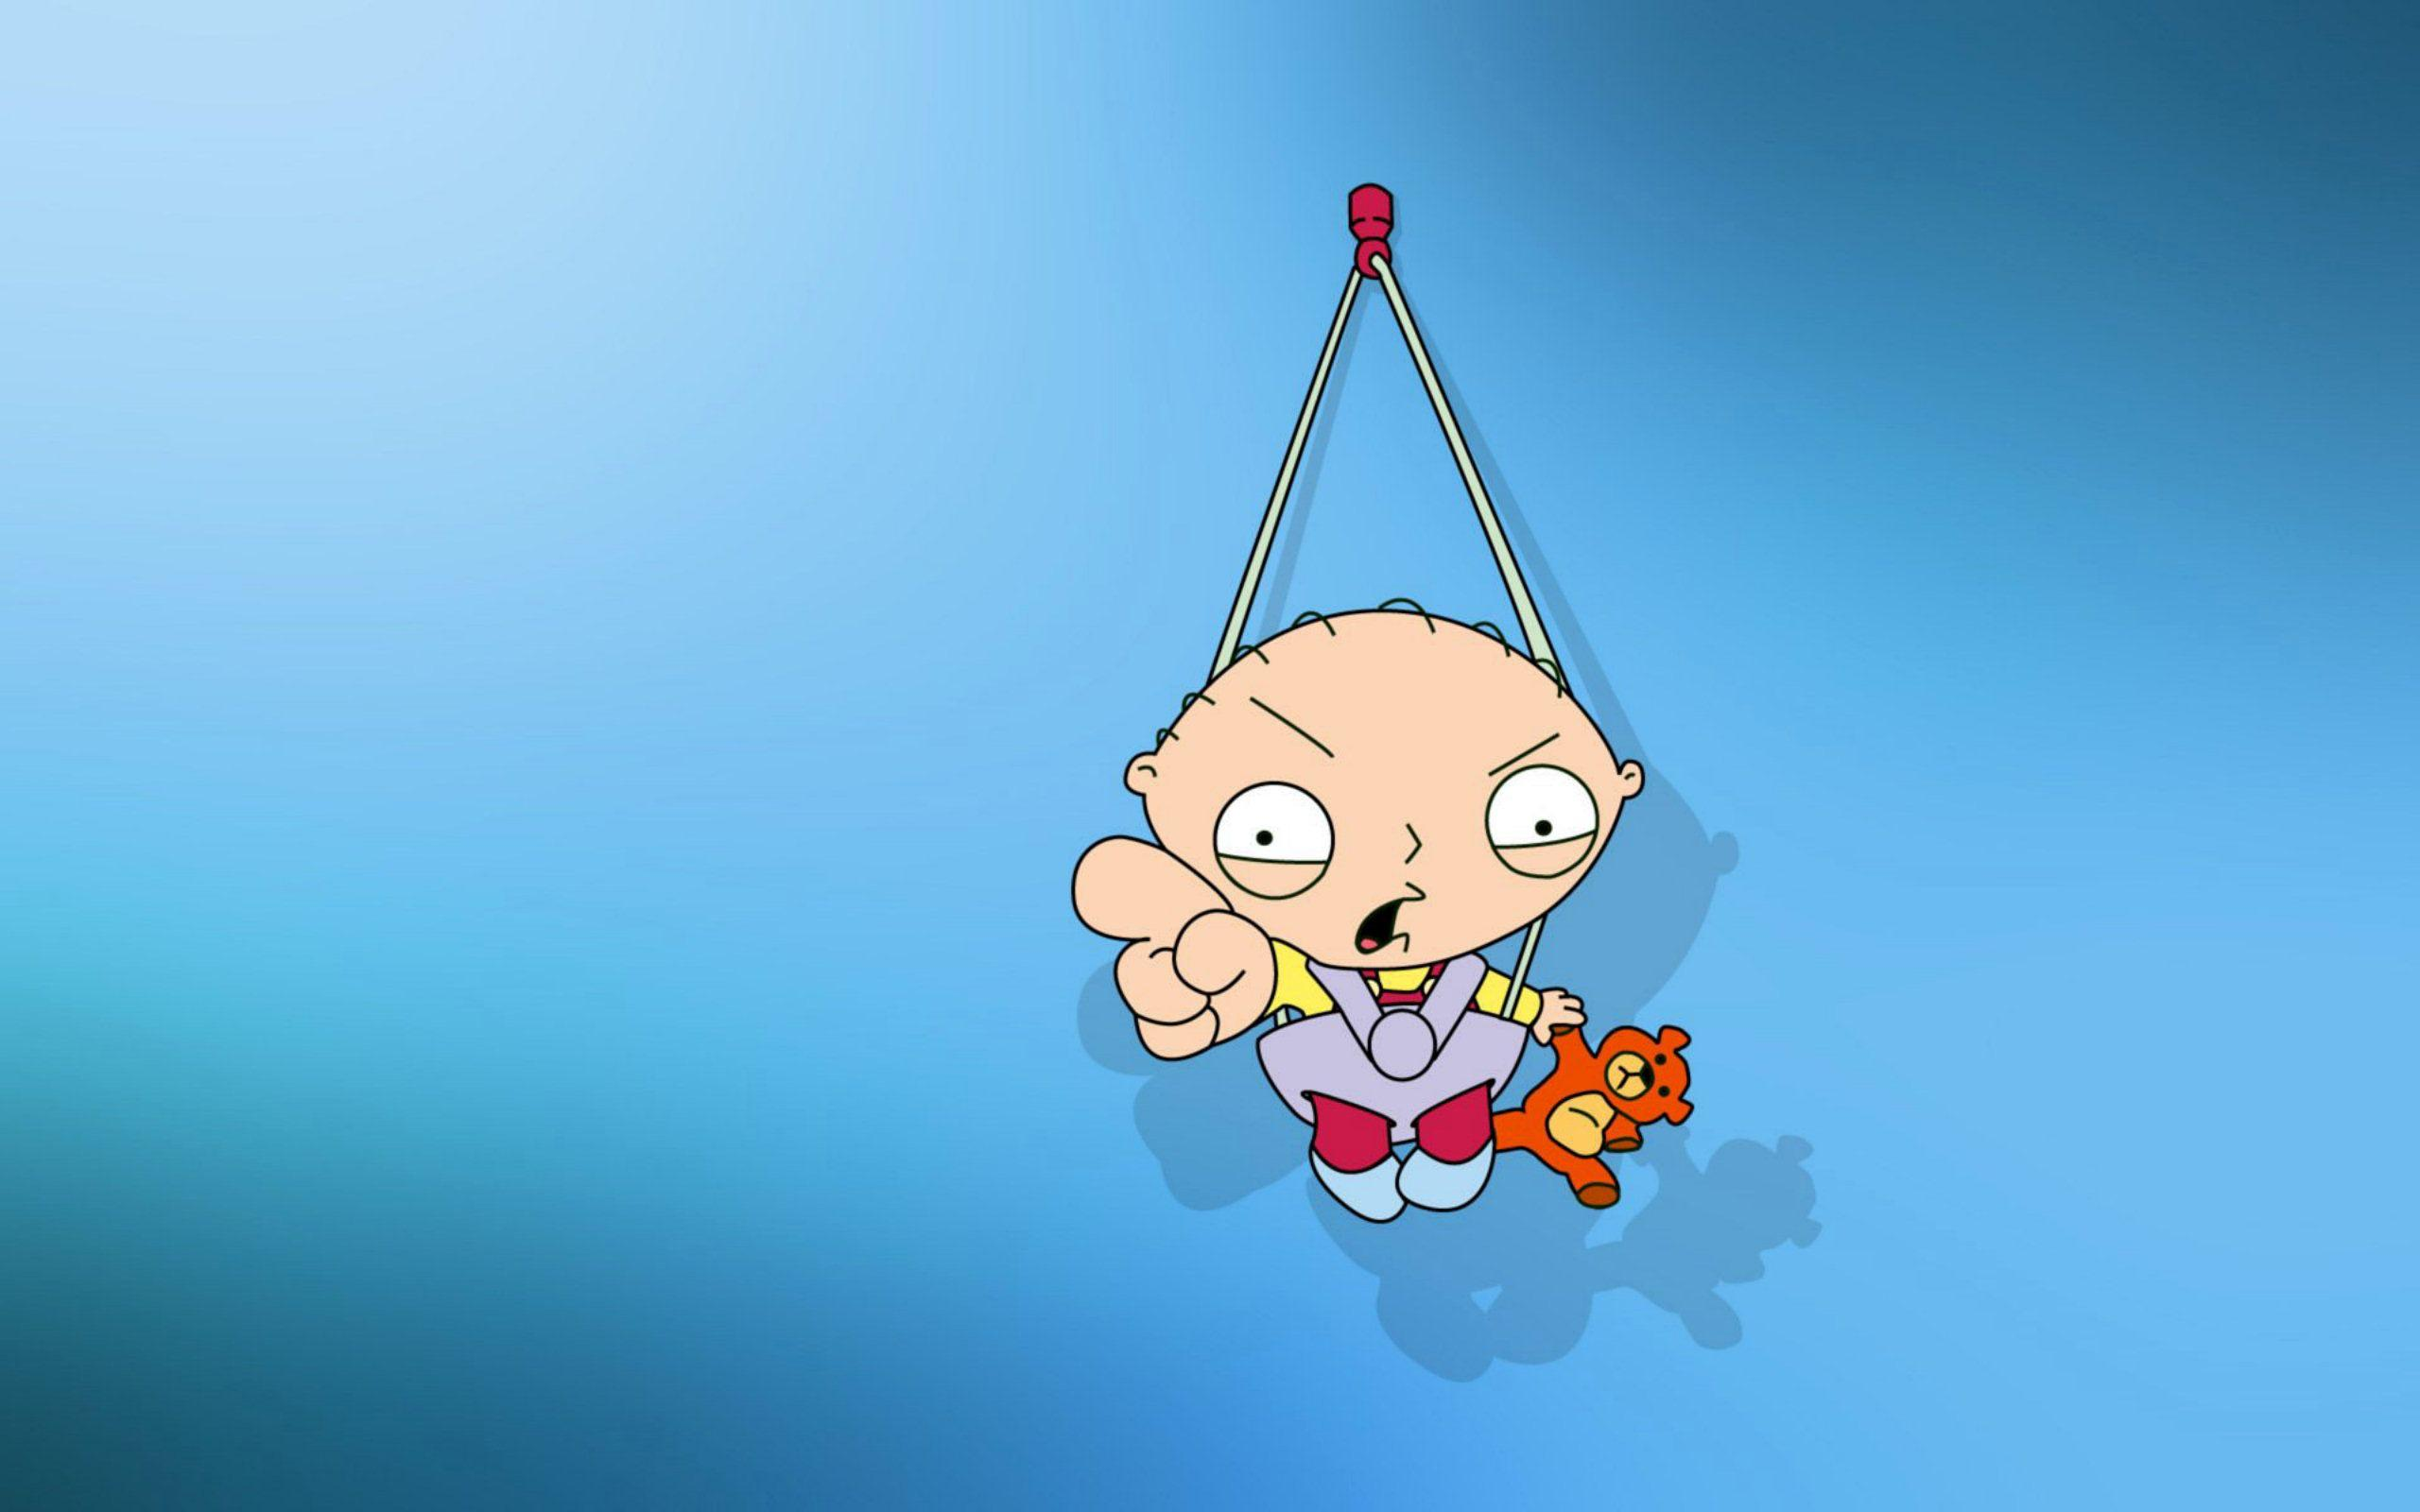 Family guy stewie wallpapers wallpaper cave - Family guy stewie background ...